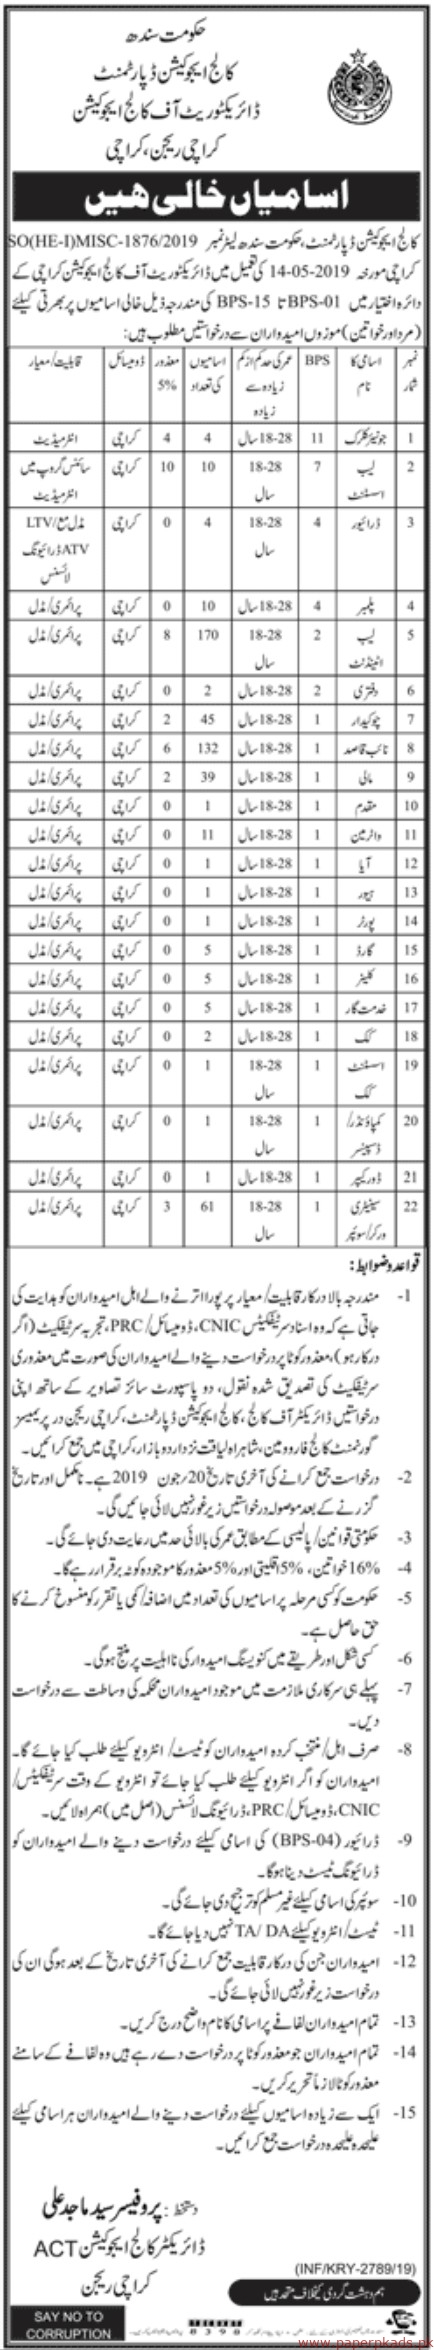 Government of Sindh - College Education Department Jobs 2019 Latest